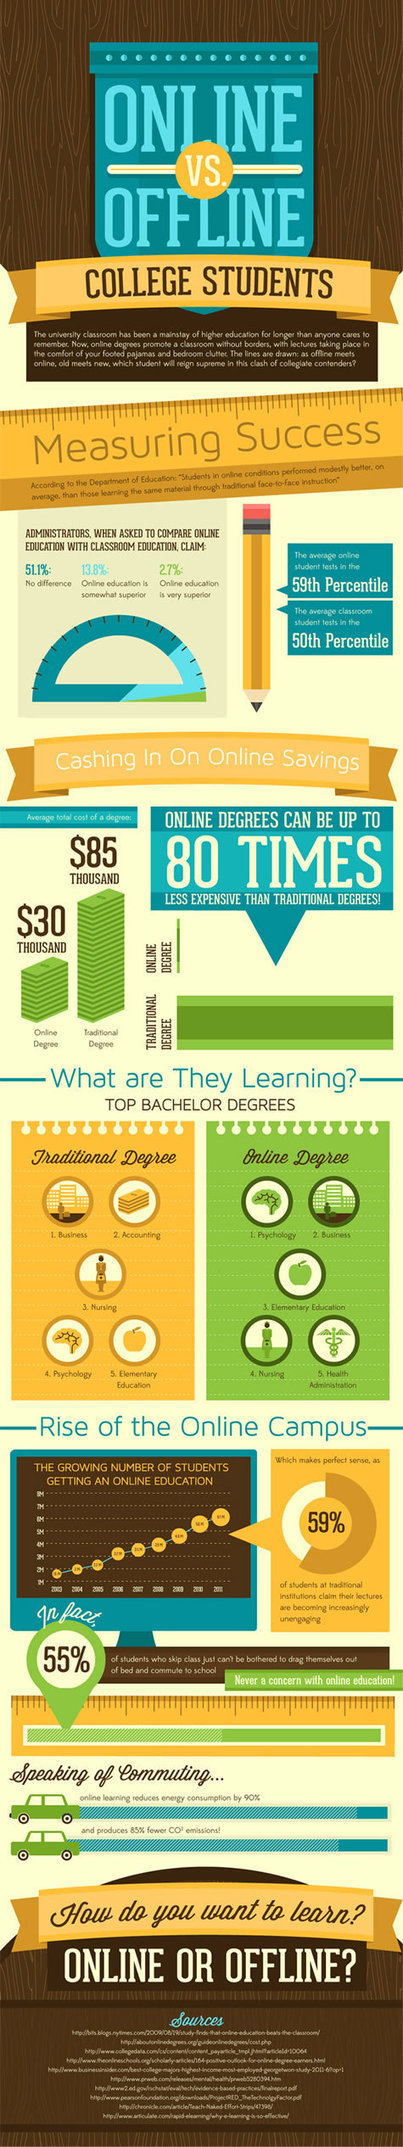 6 facts on online vs. offline learning - Page 3 of 3 - eCampus News | Instructional Technology In Higher Education | Scoop.it